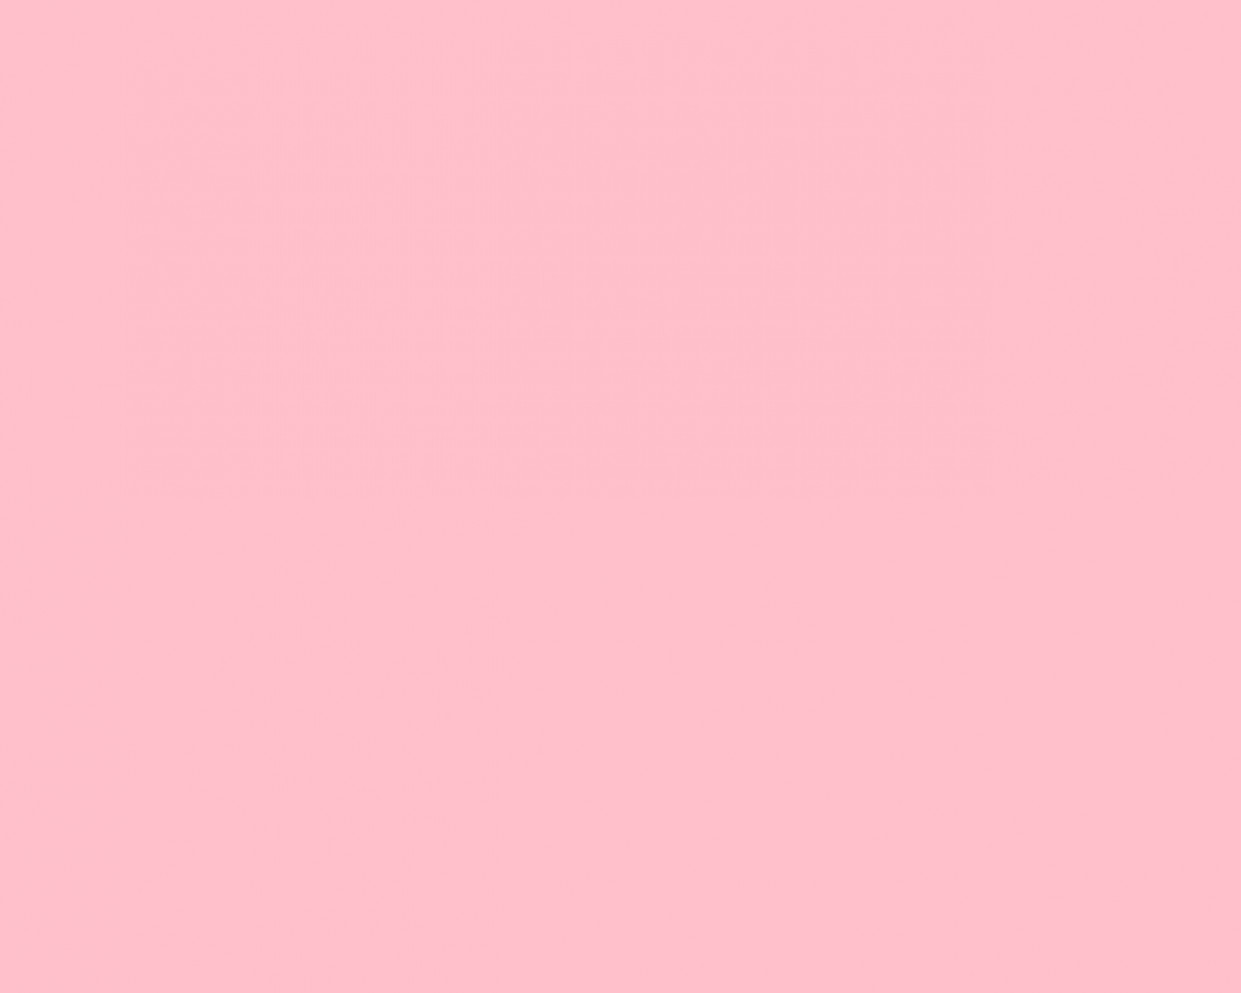 46 Wallpaper Warna Pink Polos Postwallpap3r